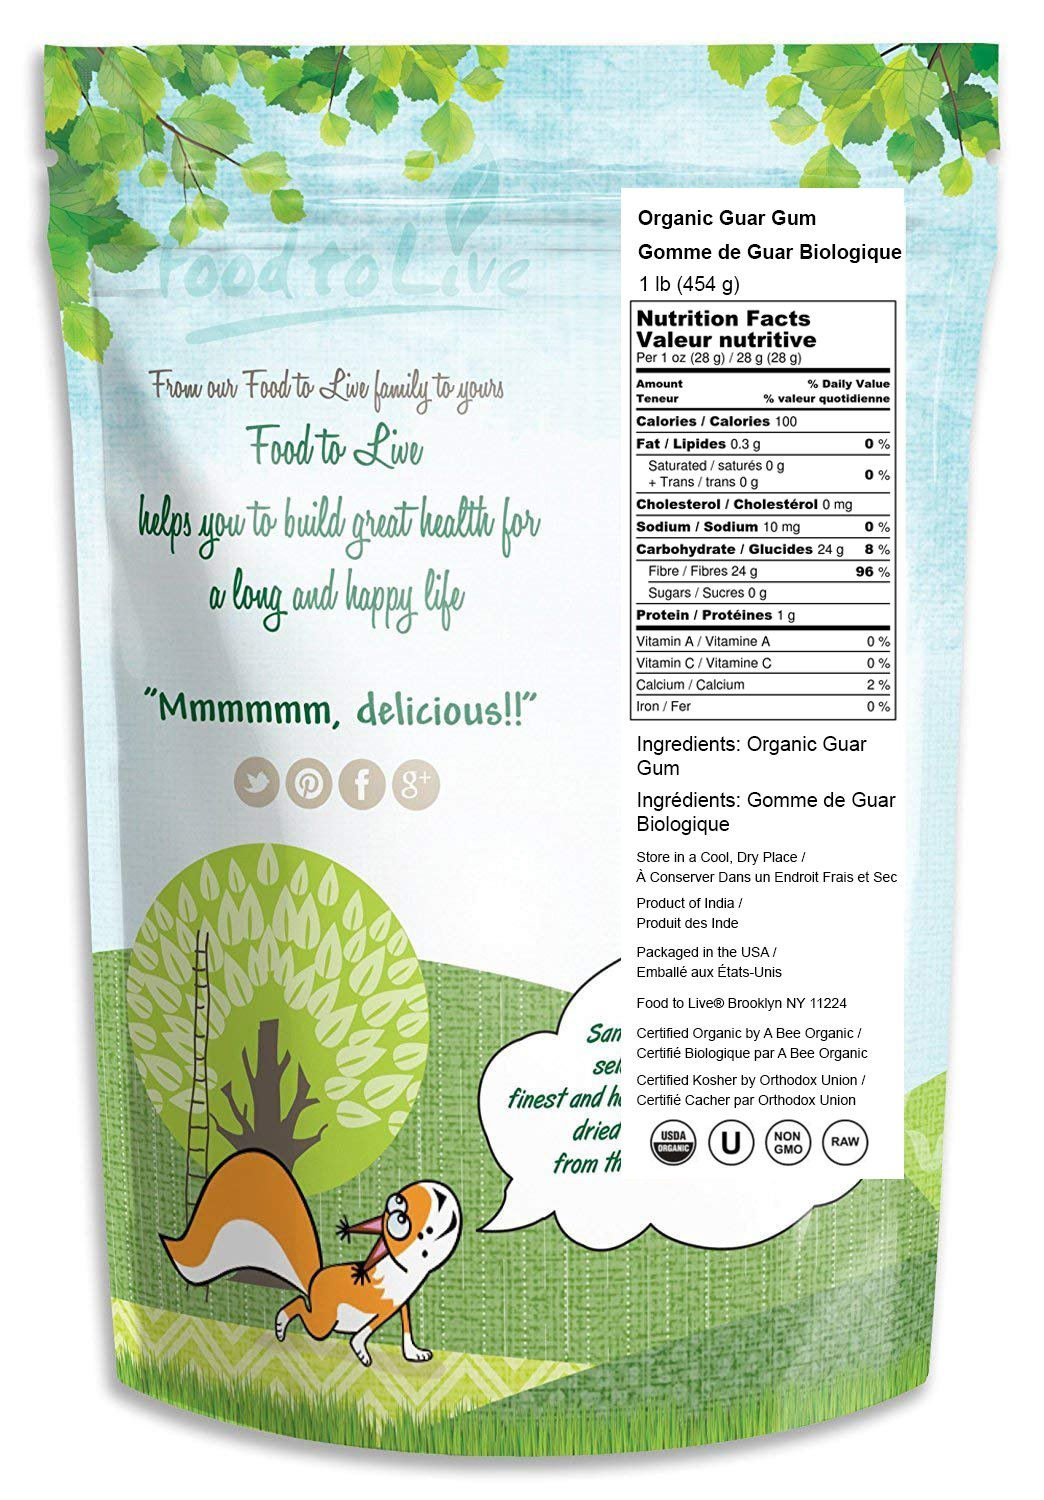 Organic Guar Gum Powder by Food to Live (Great Thickener & Binder, Food Grade, Perfect for Baking, Non-GMO, Kosher, Vegan, Bulk) — 1 Pound by Food to Live (Image #2)